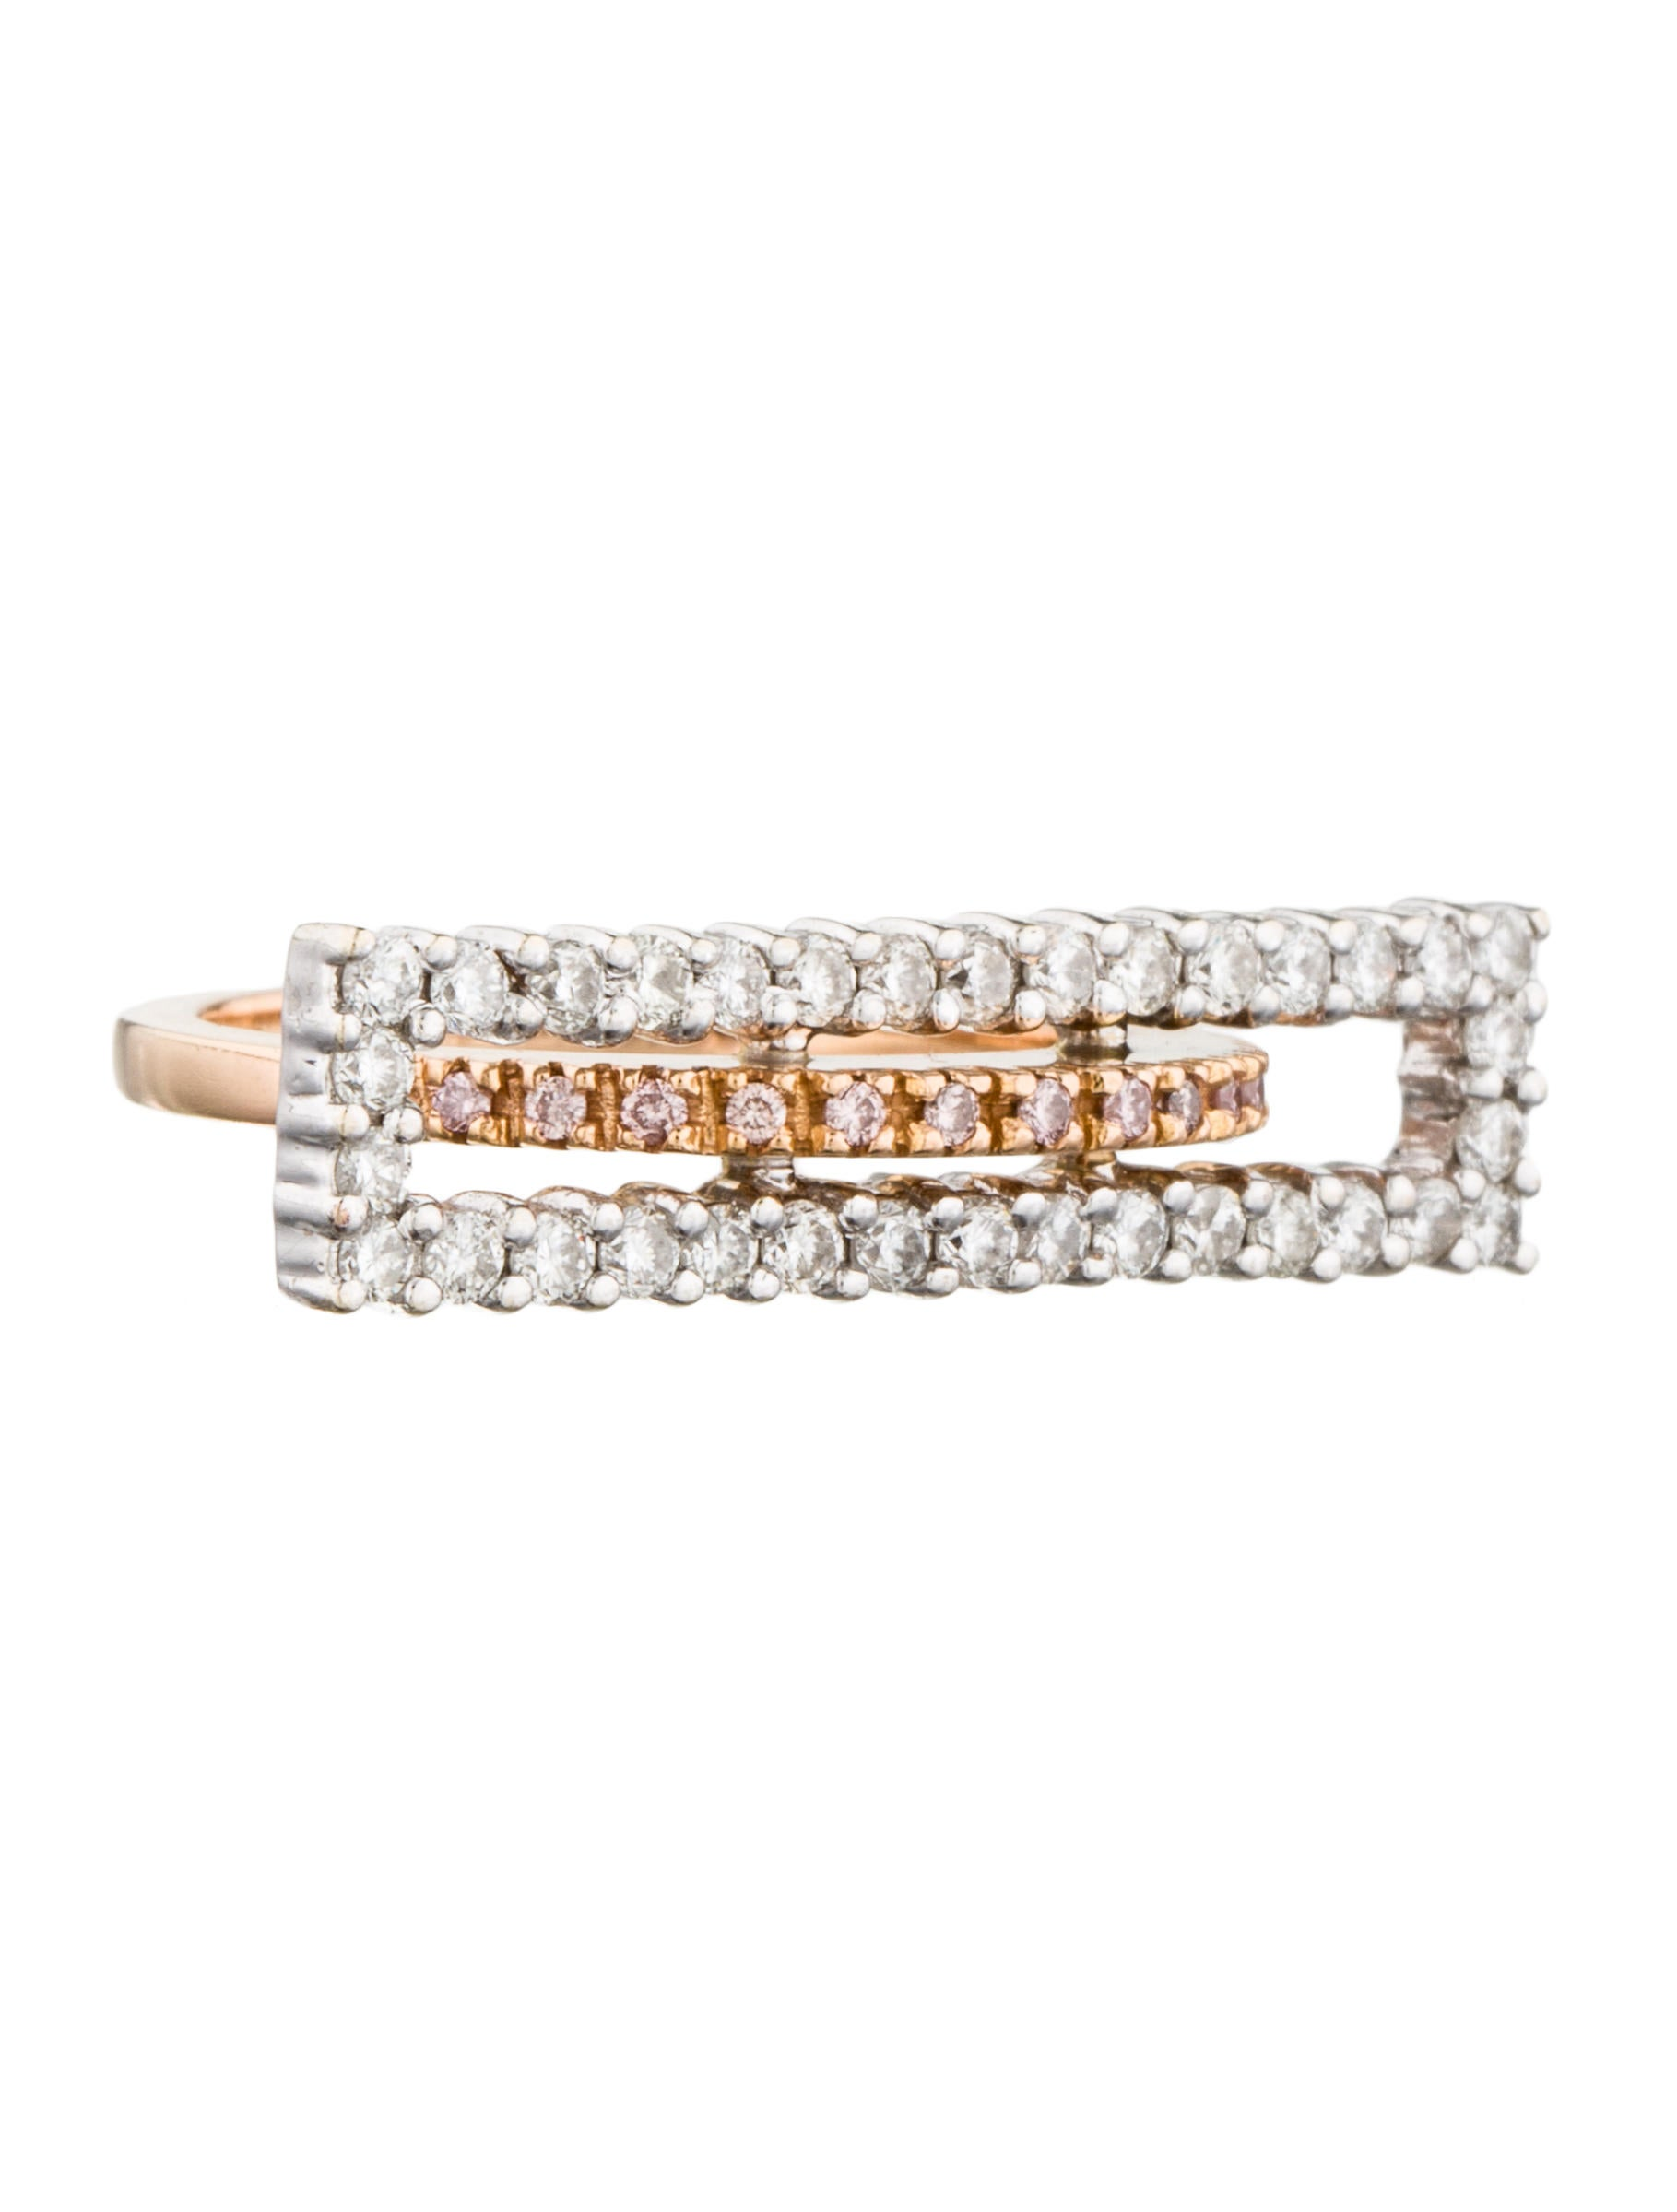 diamond bar women » today price zoë chicco diamond bar bracelet by womens bracelets, threads clothing exchange is a buy / sell / trade women's and juniors new, used and vintage clothing boutique.